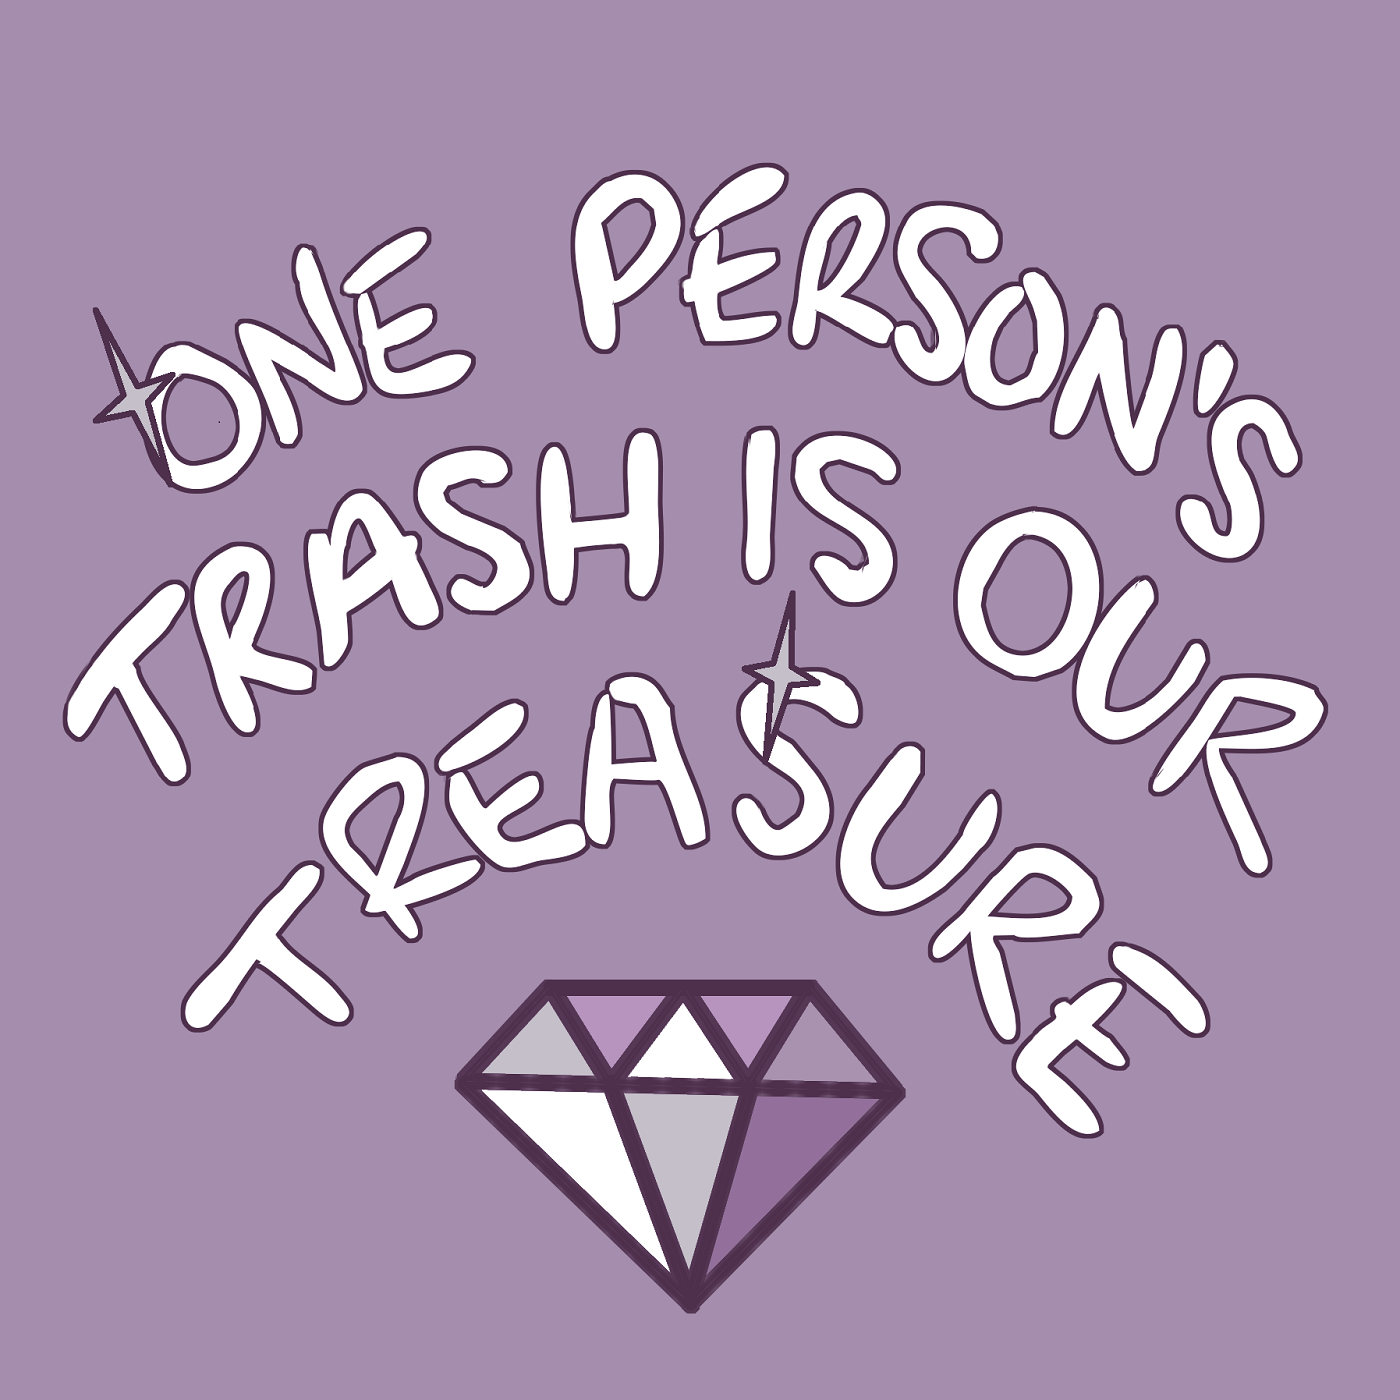 One Person's Trash Is Our Treasure